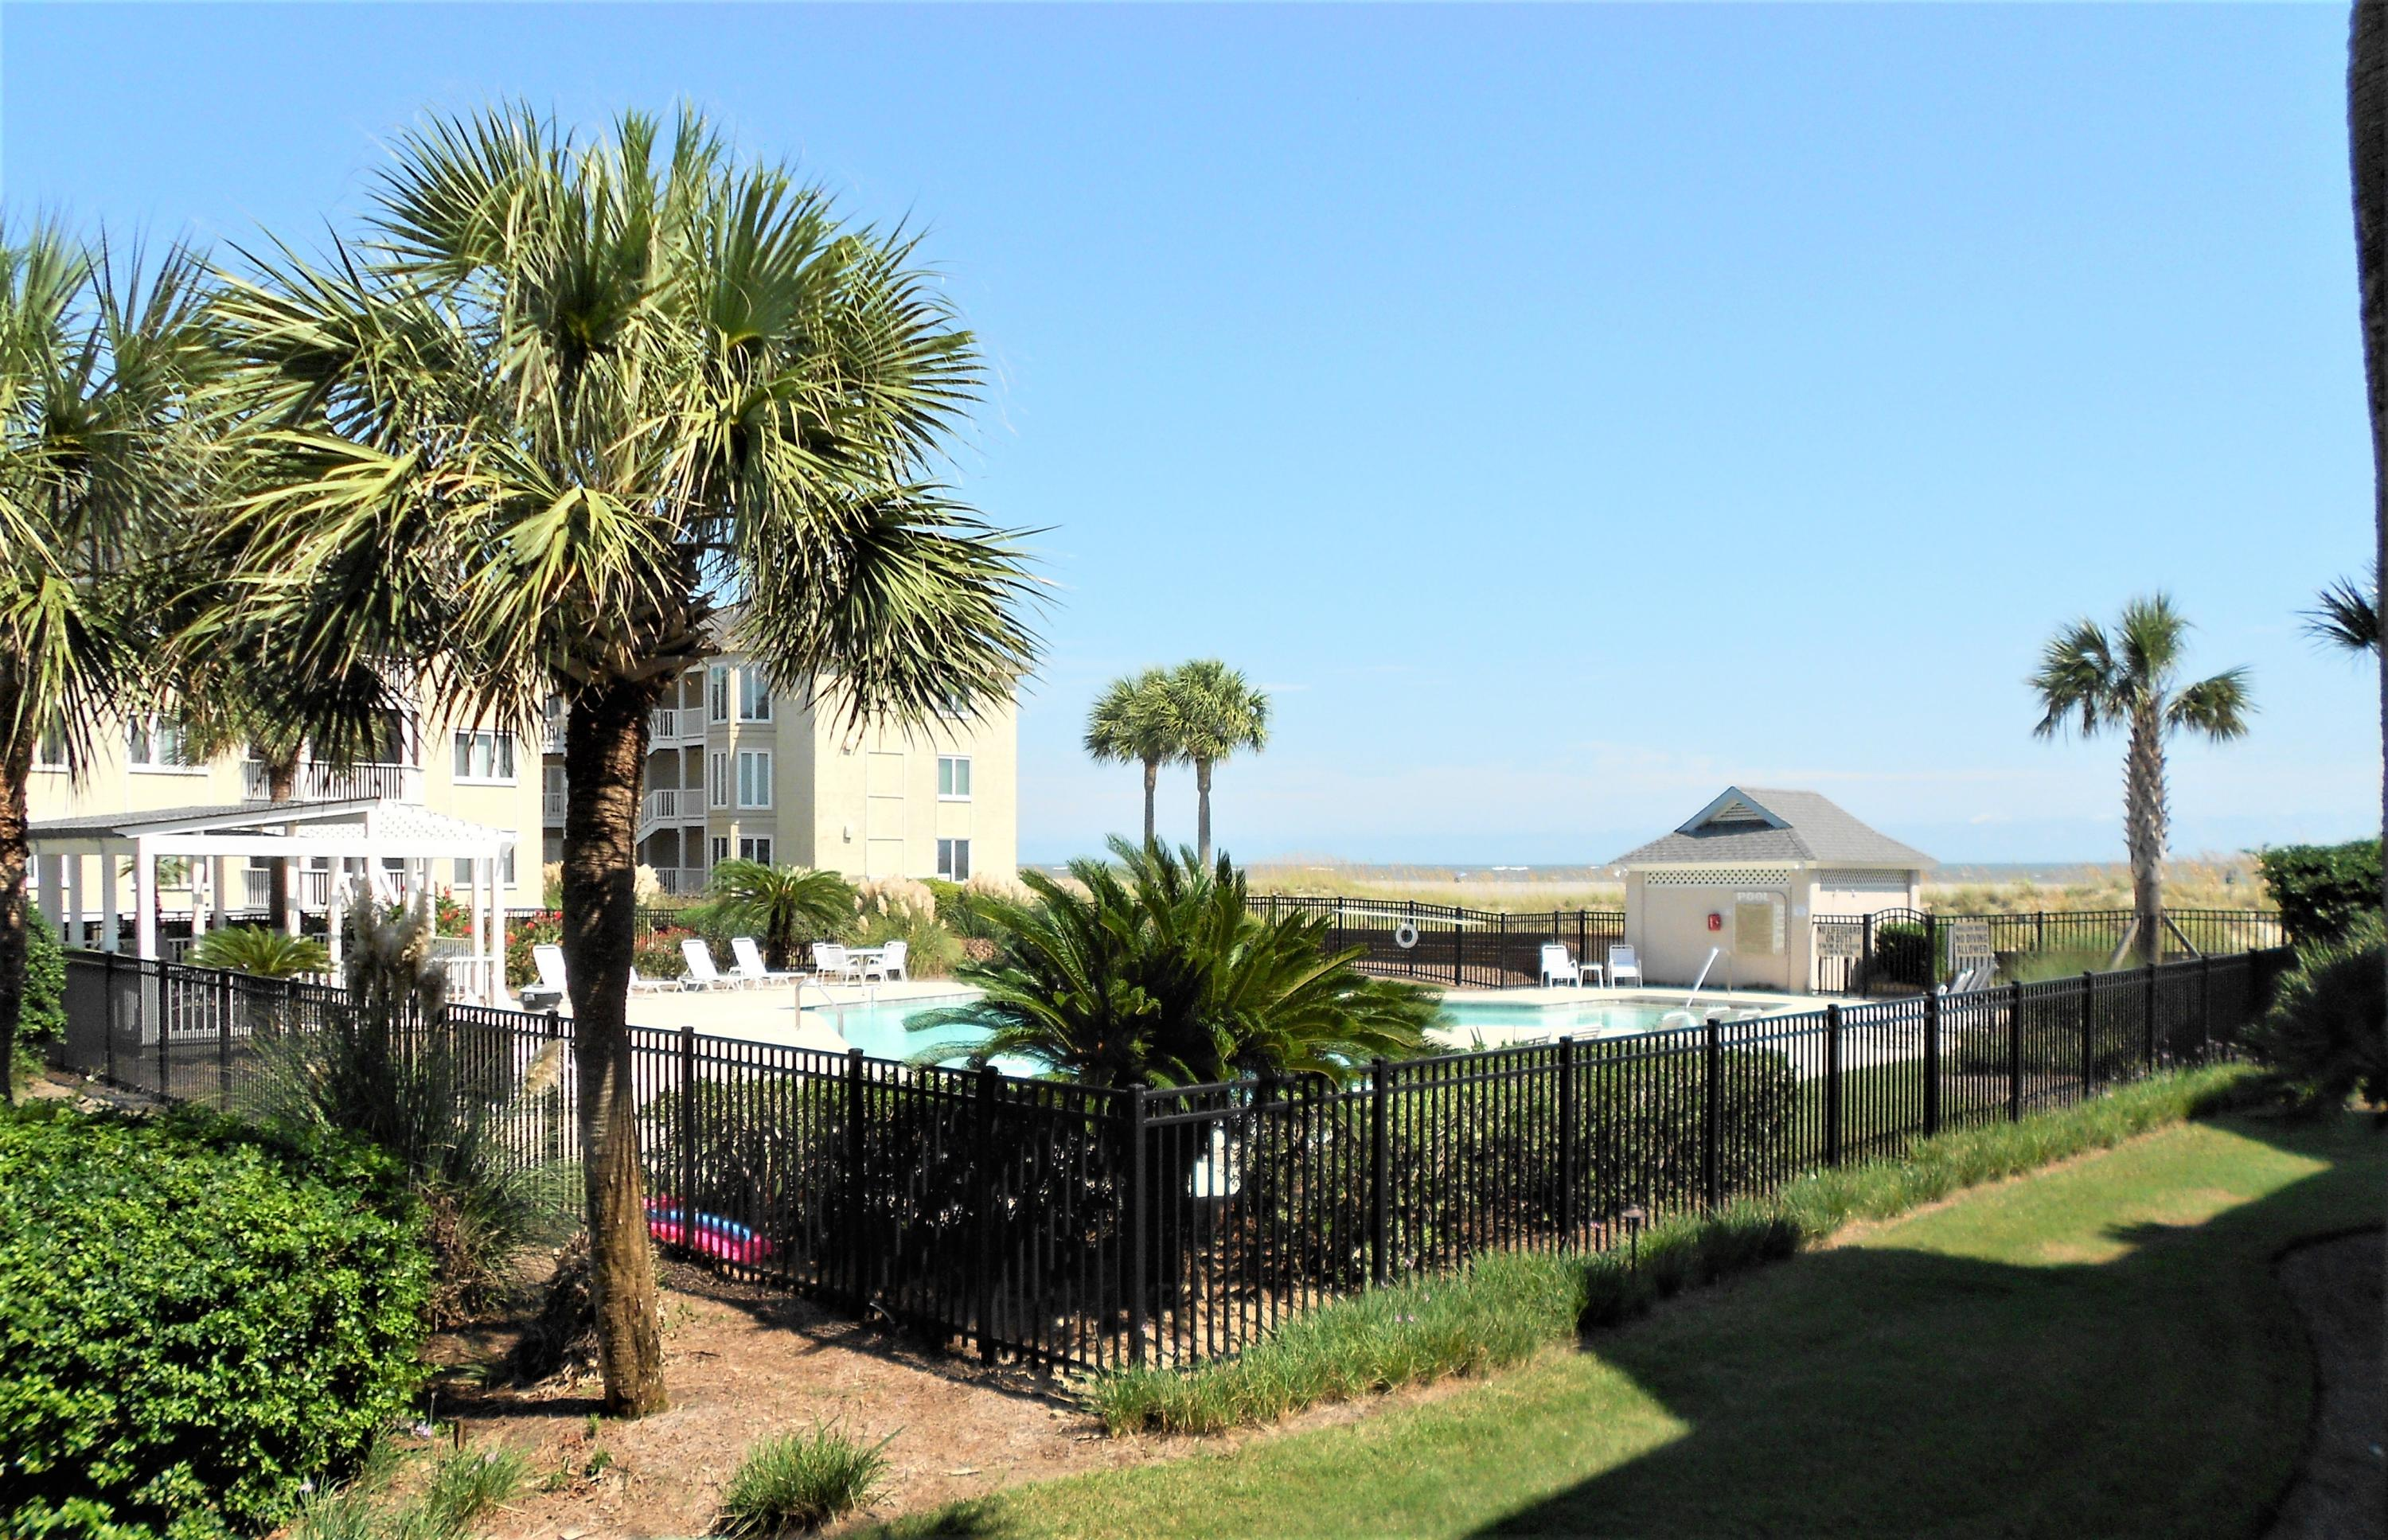 103 Tidewater Isle Of Palms, SC 29451